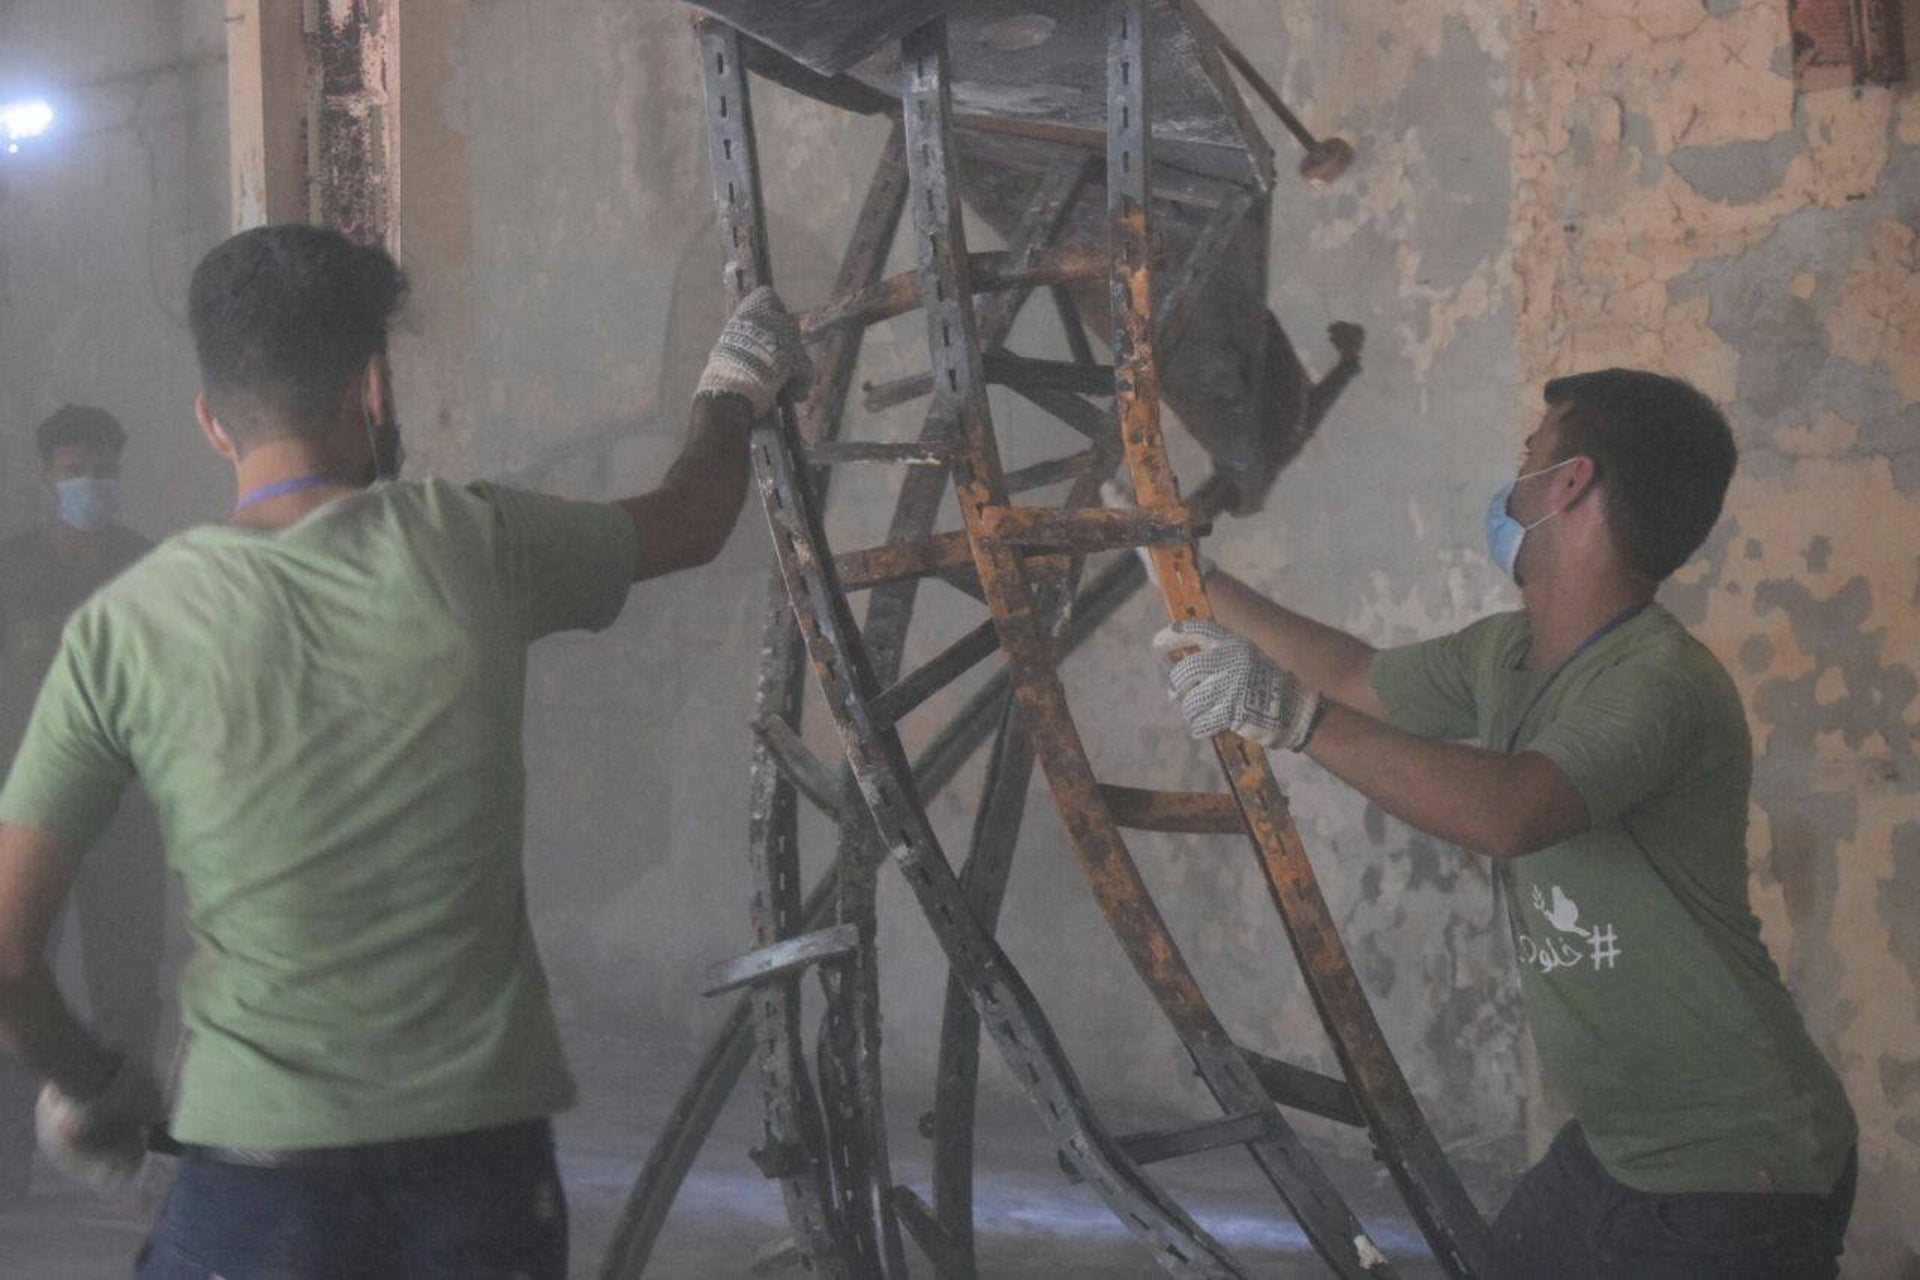 Students are removing a burned books stand at Mosul's library. They discovered that not everything went up in flames.